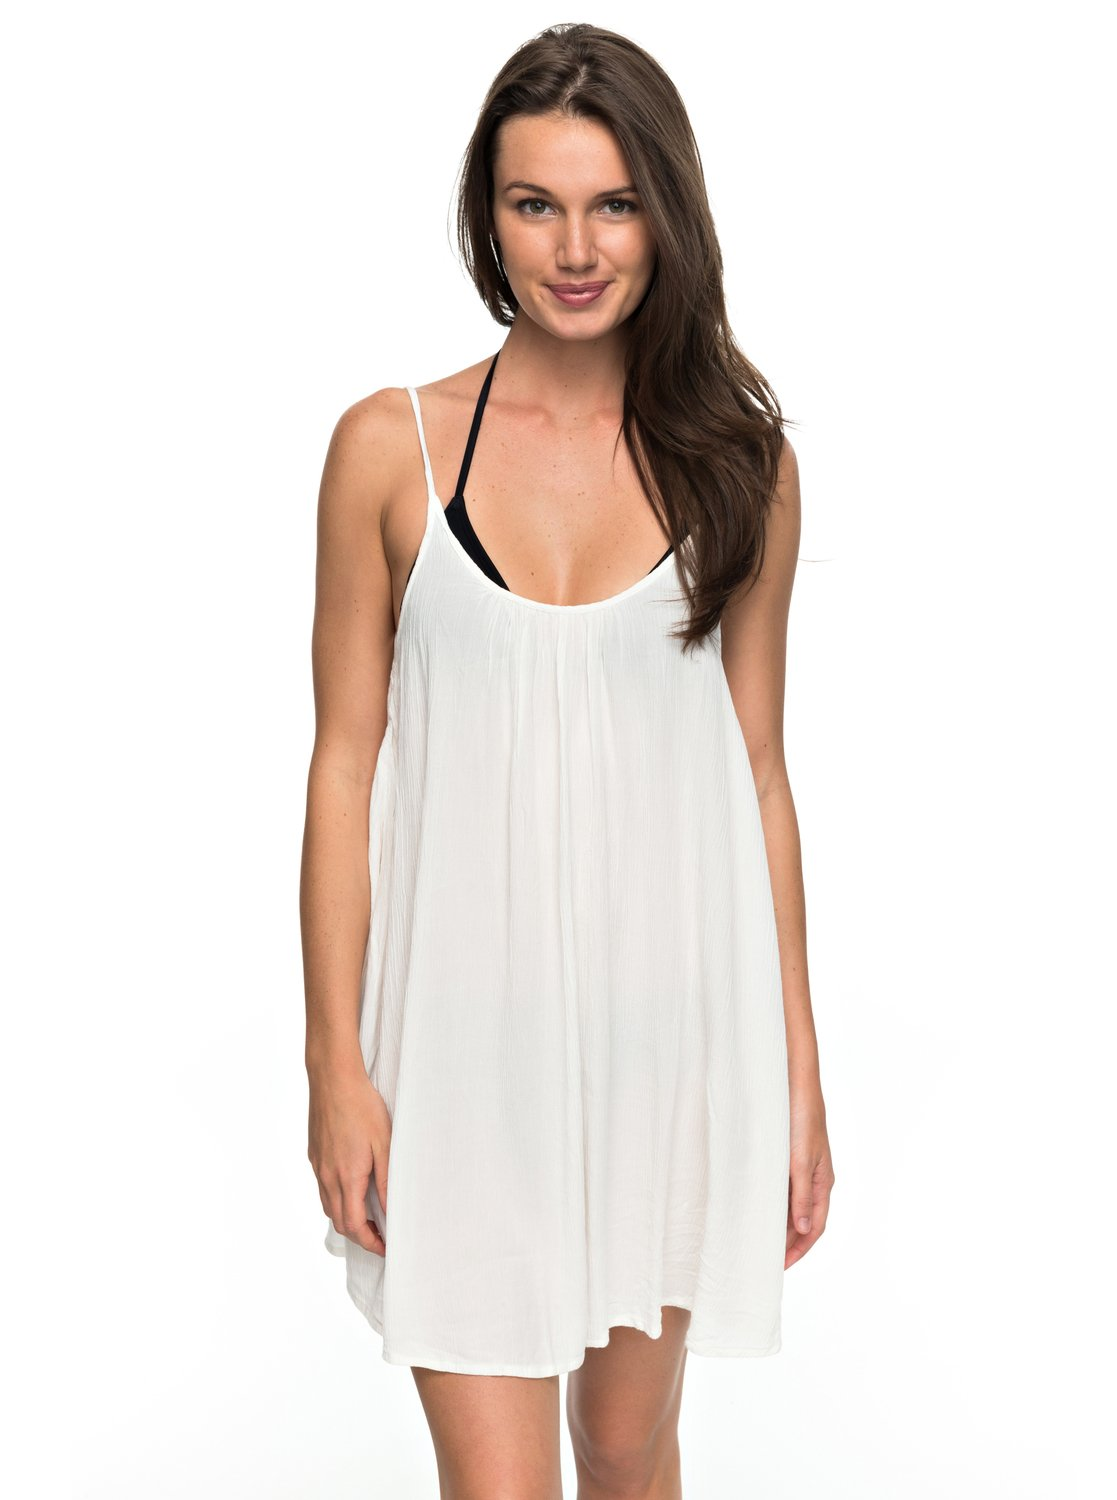 62f226ed69 Cover-up dress for women. Features include: style linked to swimwear, short  length, casual & unrestricted relaxed fit, lightweight, round neckline and  back ...